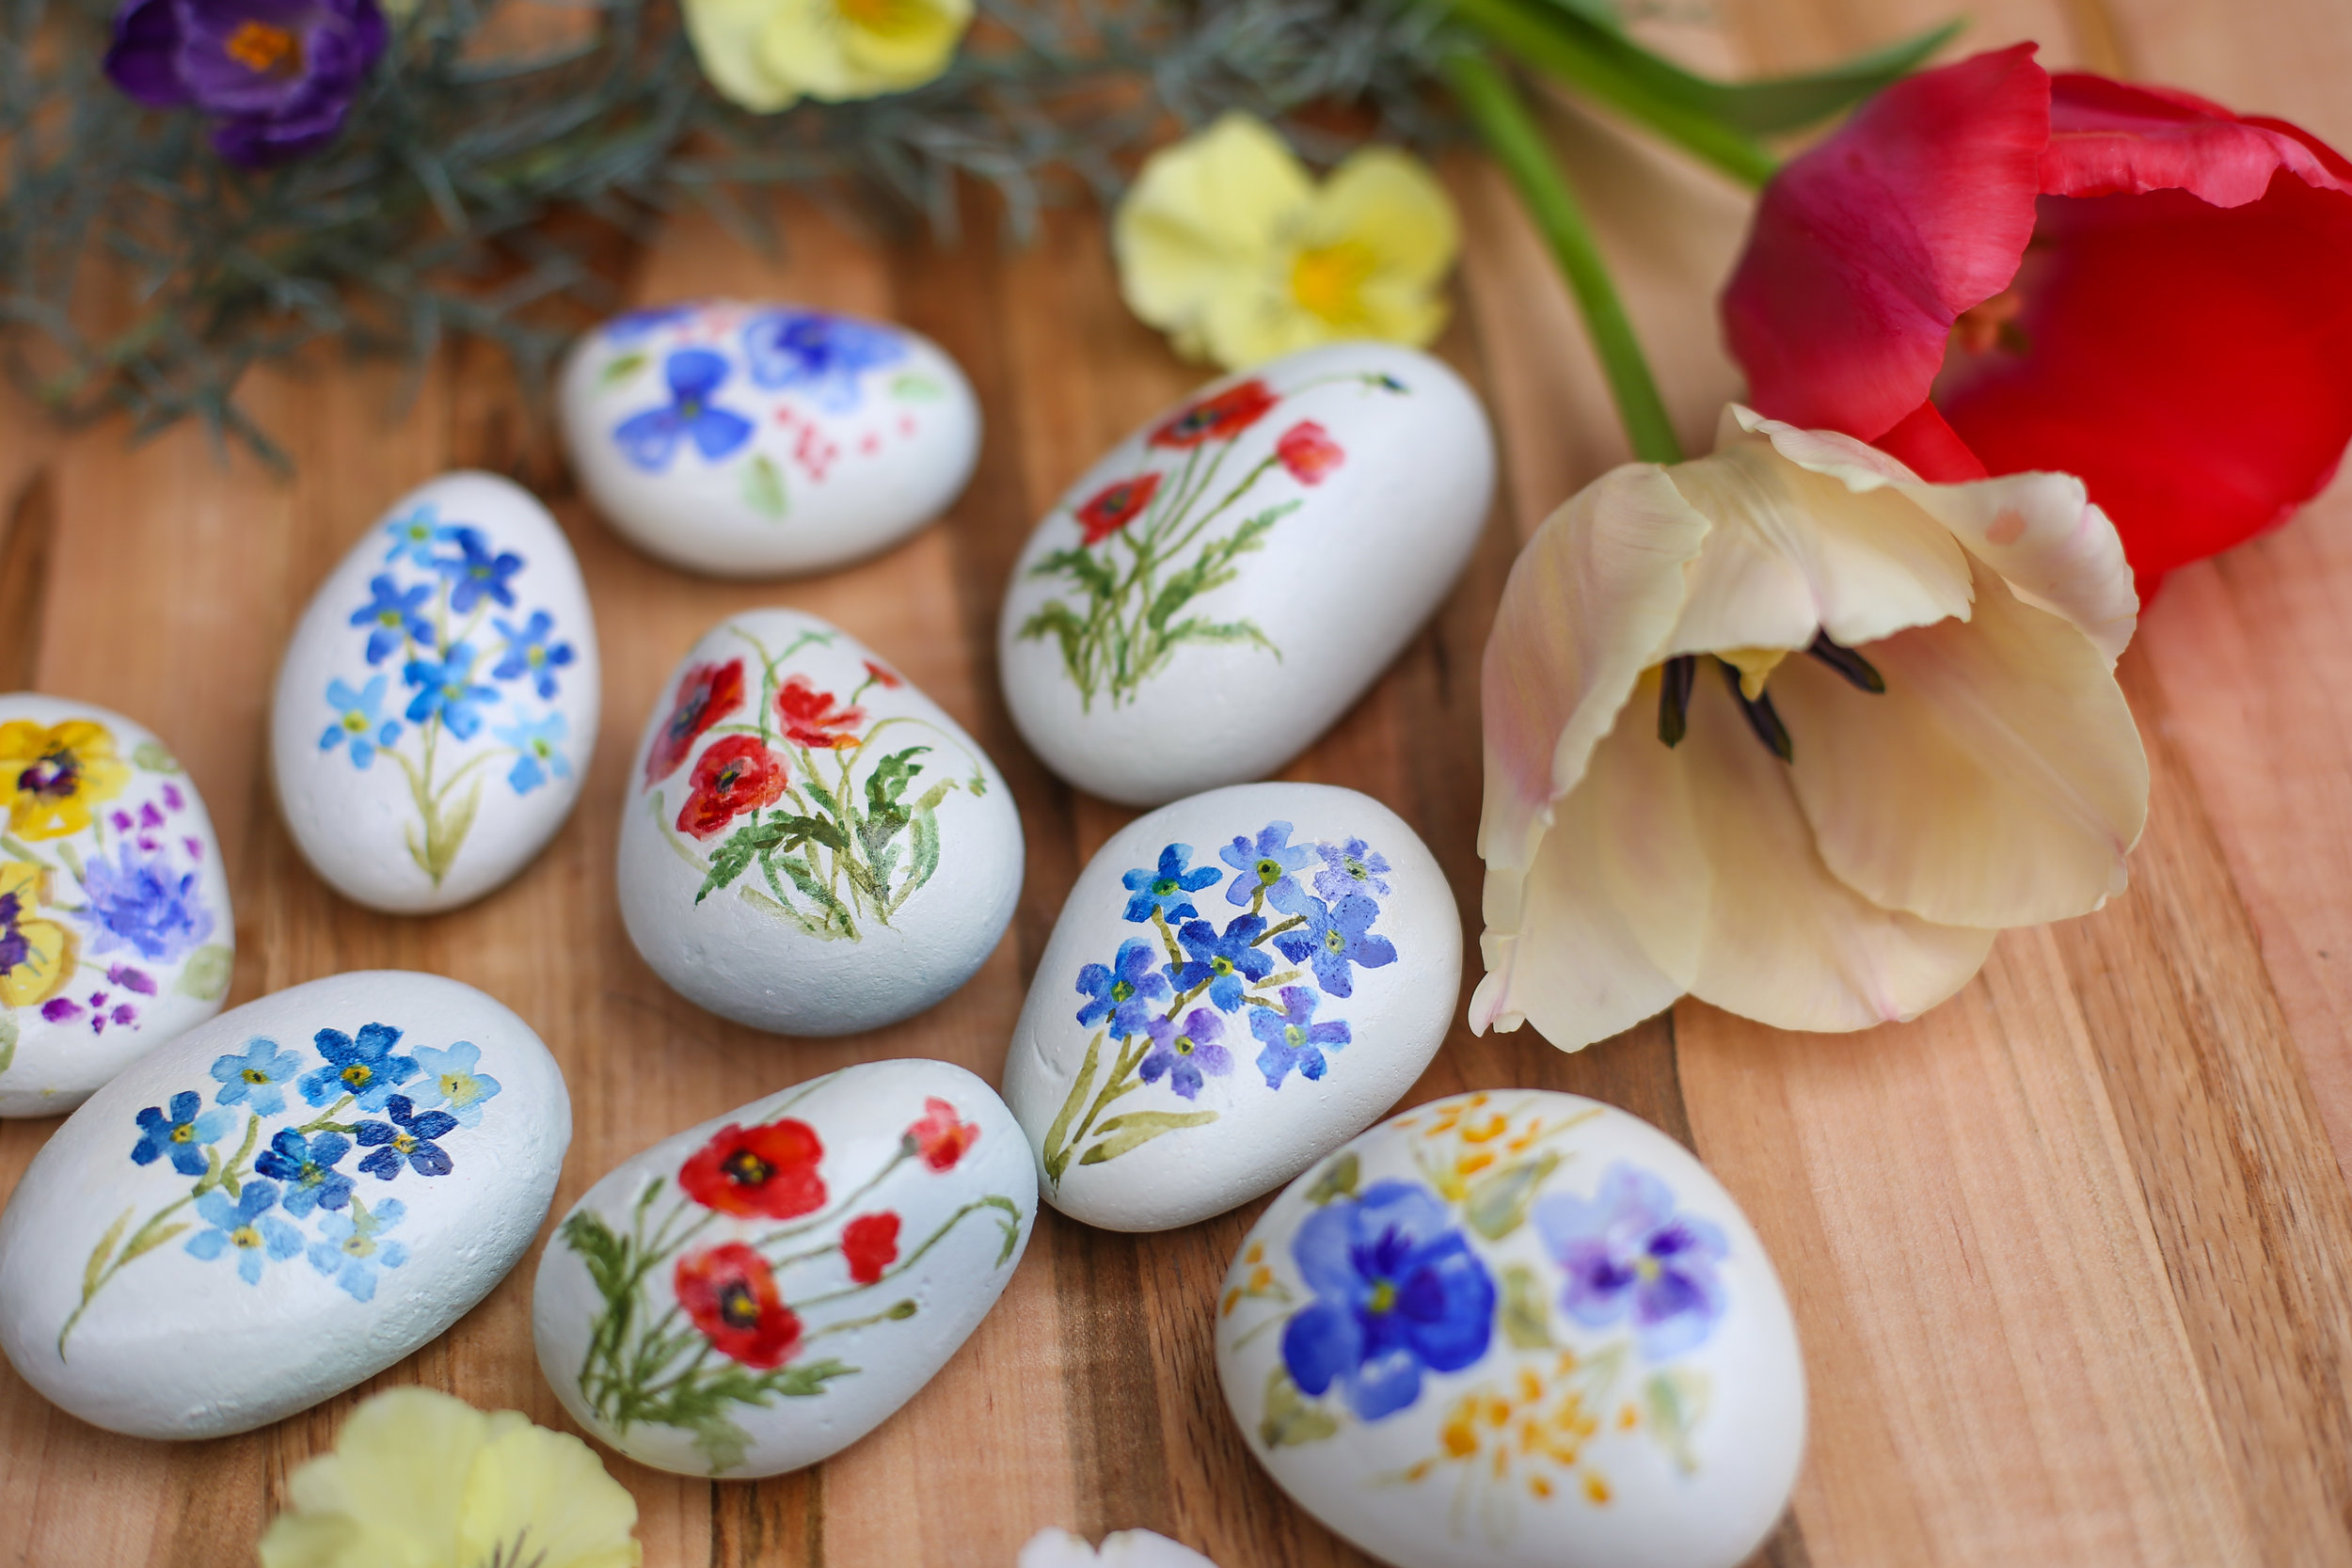 Watercolor paint on rocks, poppies, pansies, and delicate spring flowers all sealed with a shiny gloss.